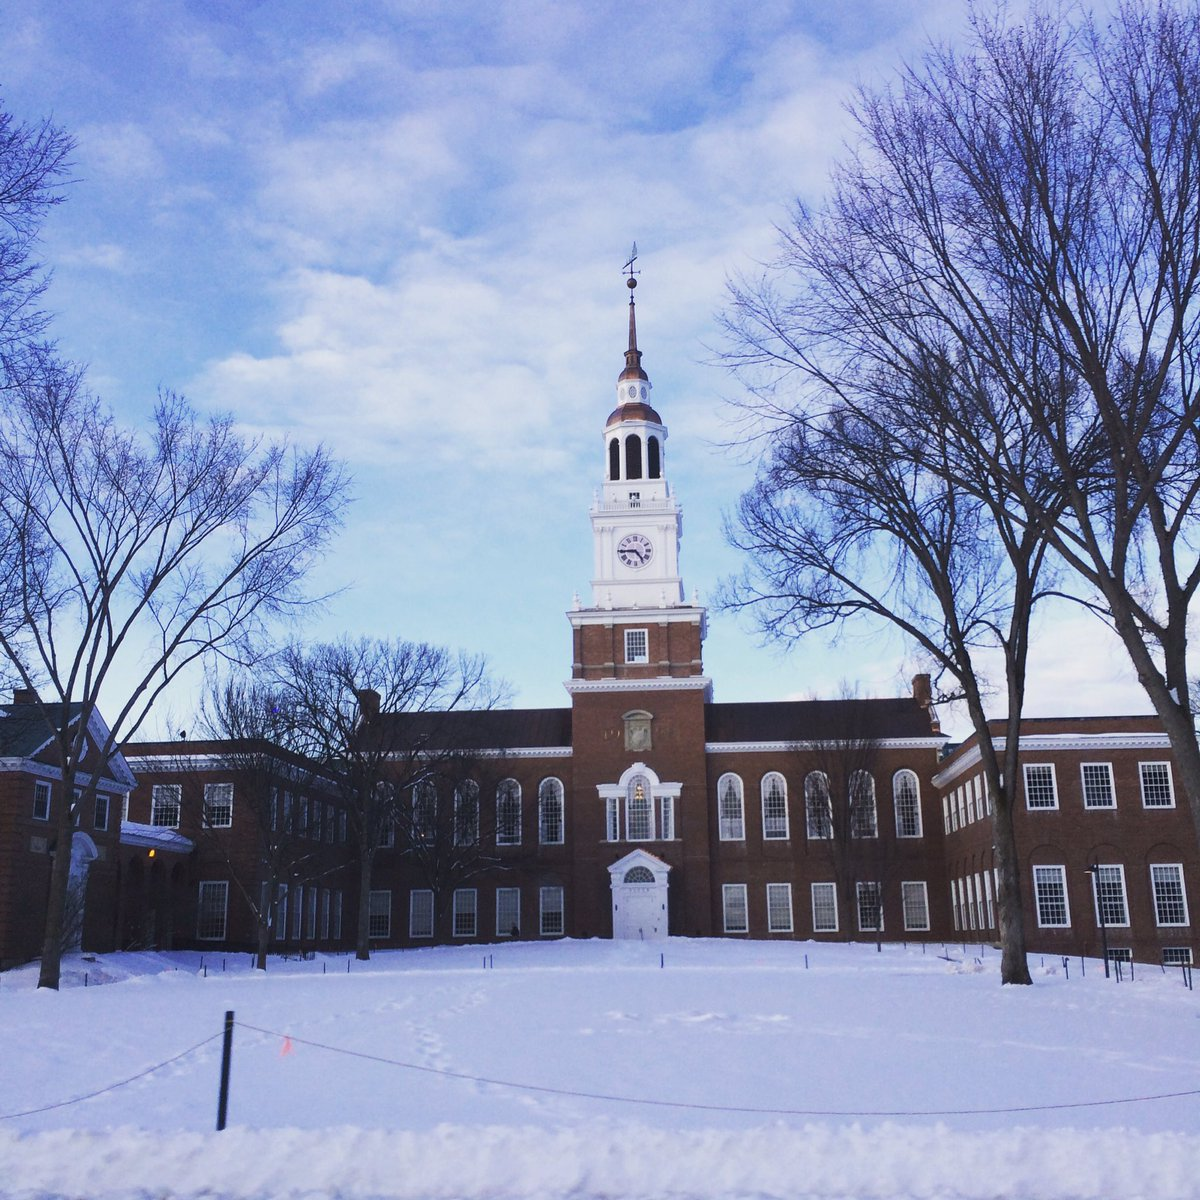 RT @nicolaruth1: Some snaps from @dartmouth looking lovely in the snow ❄️☃️ https://t.co/AHKsnObXpU